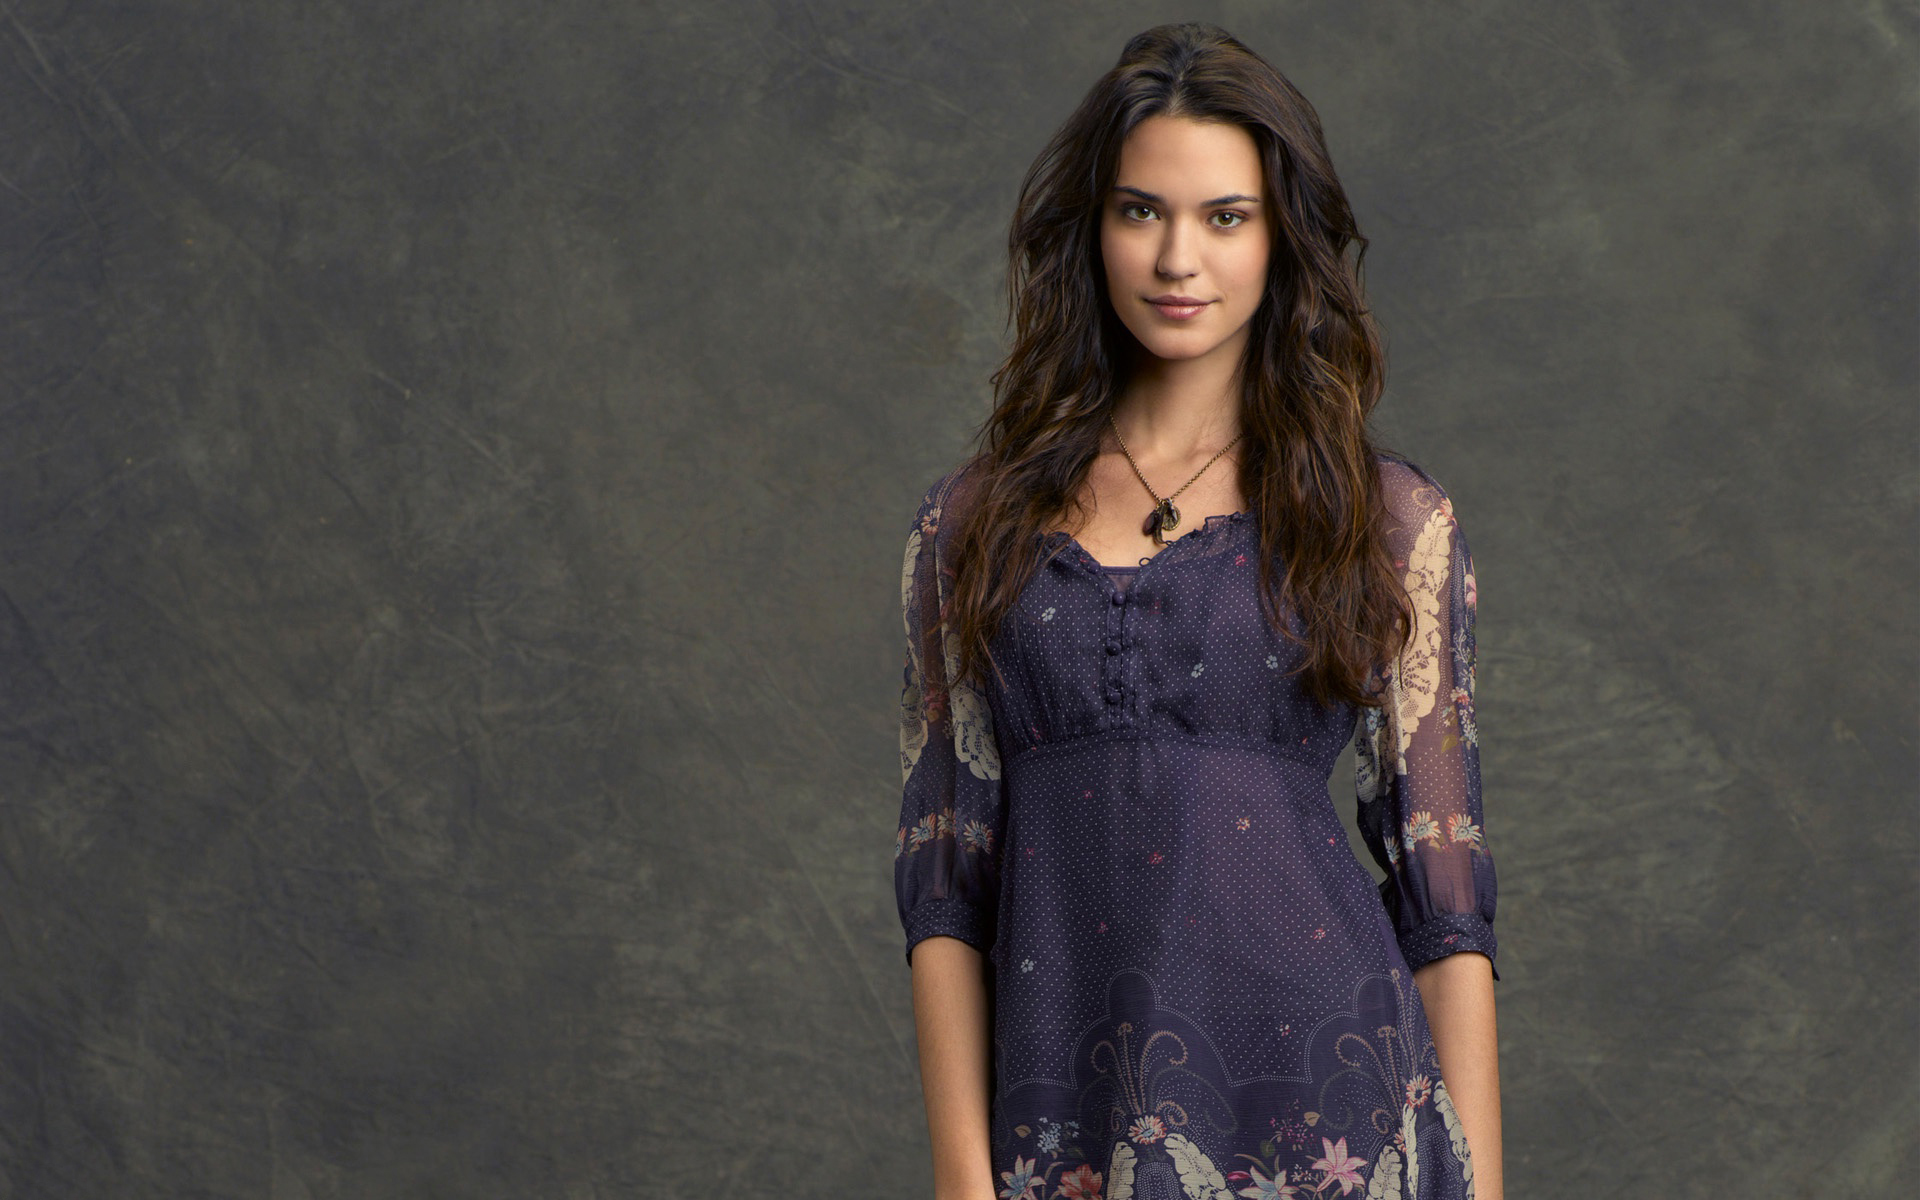 1920x1200 - Odette Annable Wallpapers 36